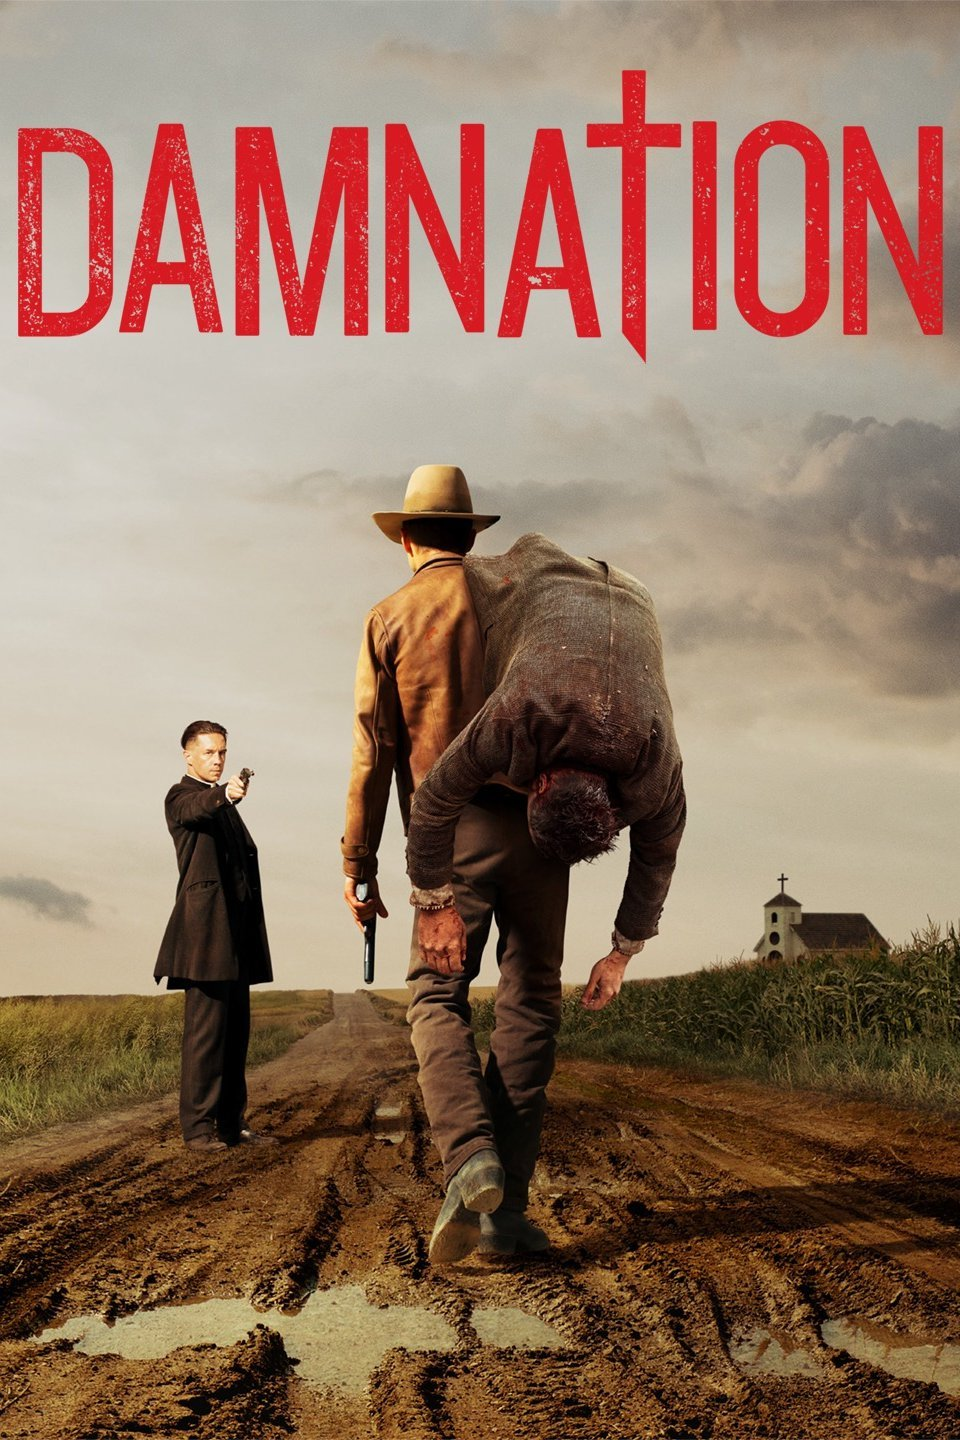 Damnation Season 1 Episode 7 Download HDTV 480p & 720p